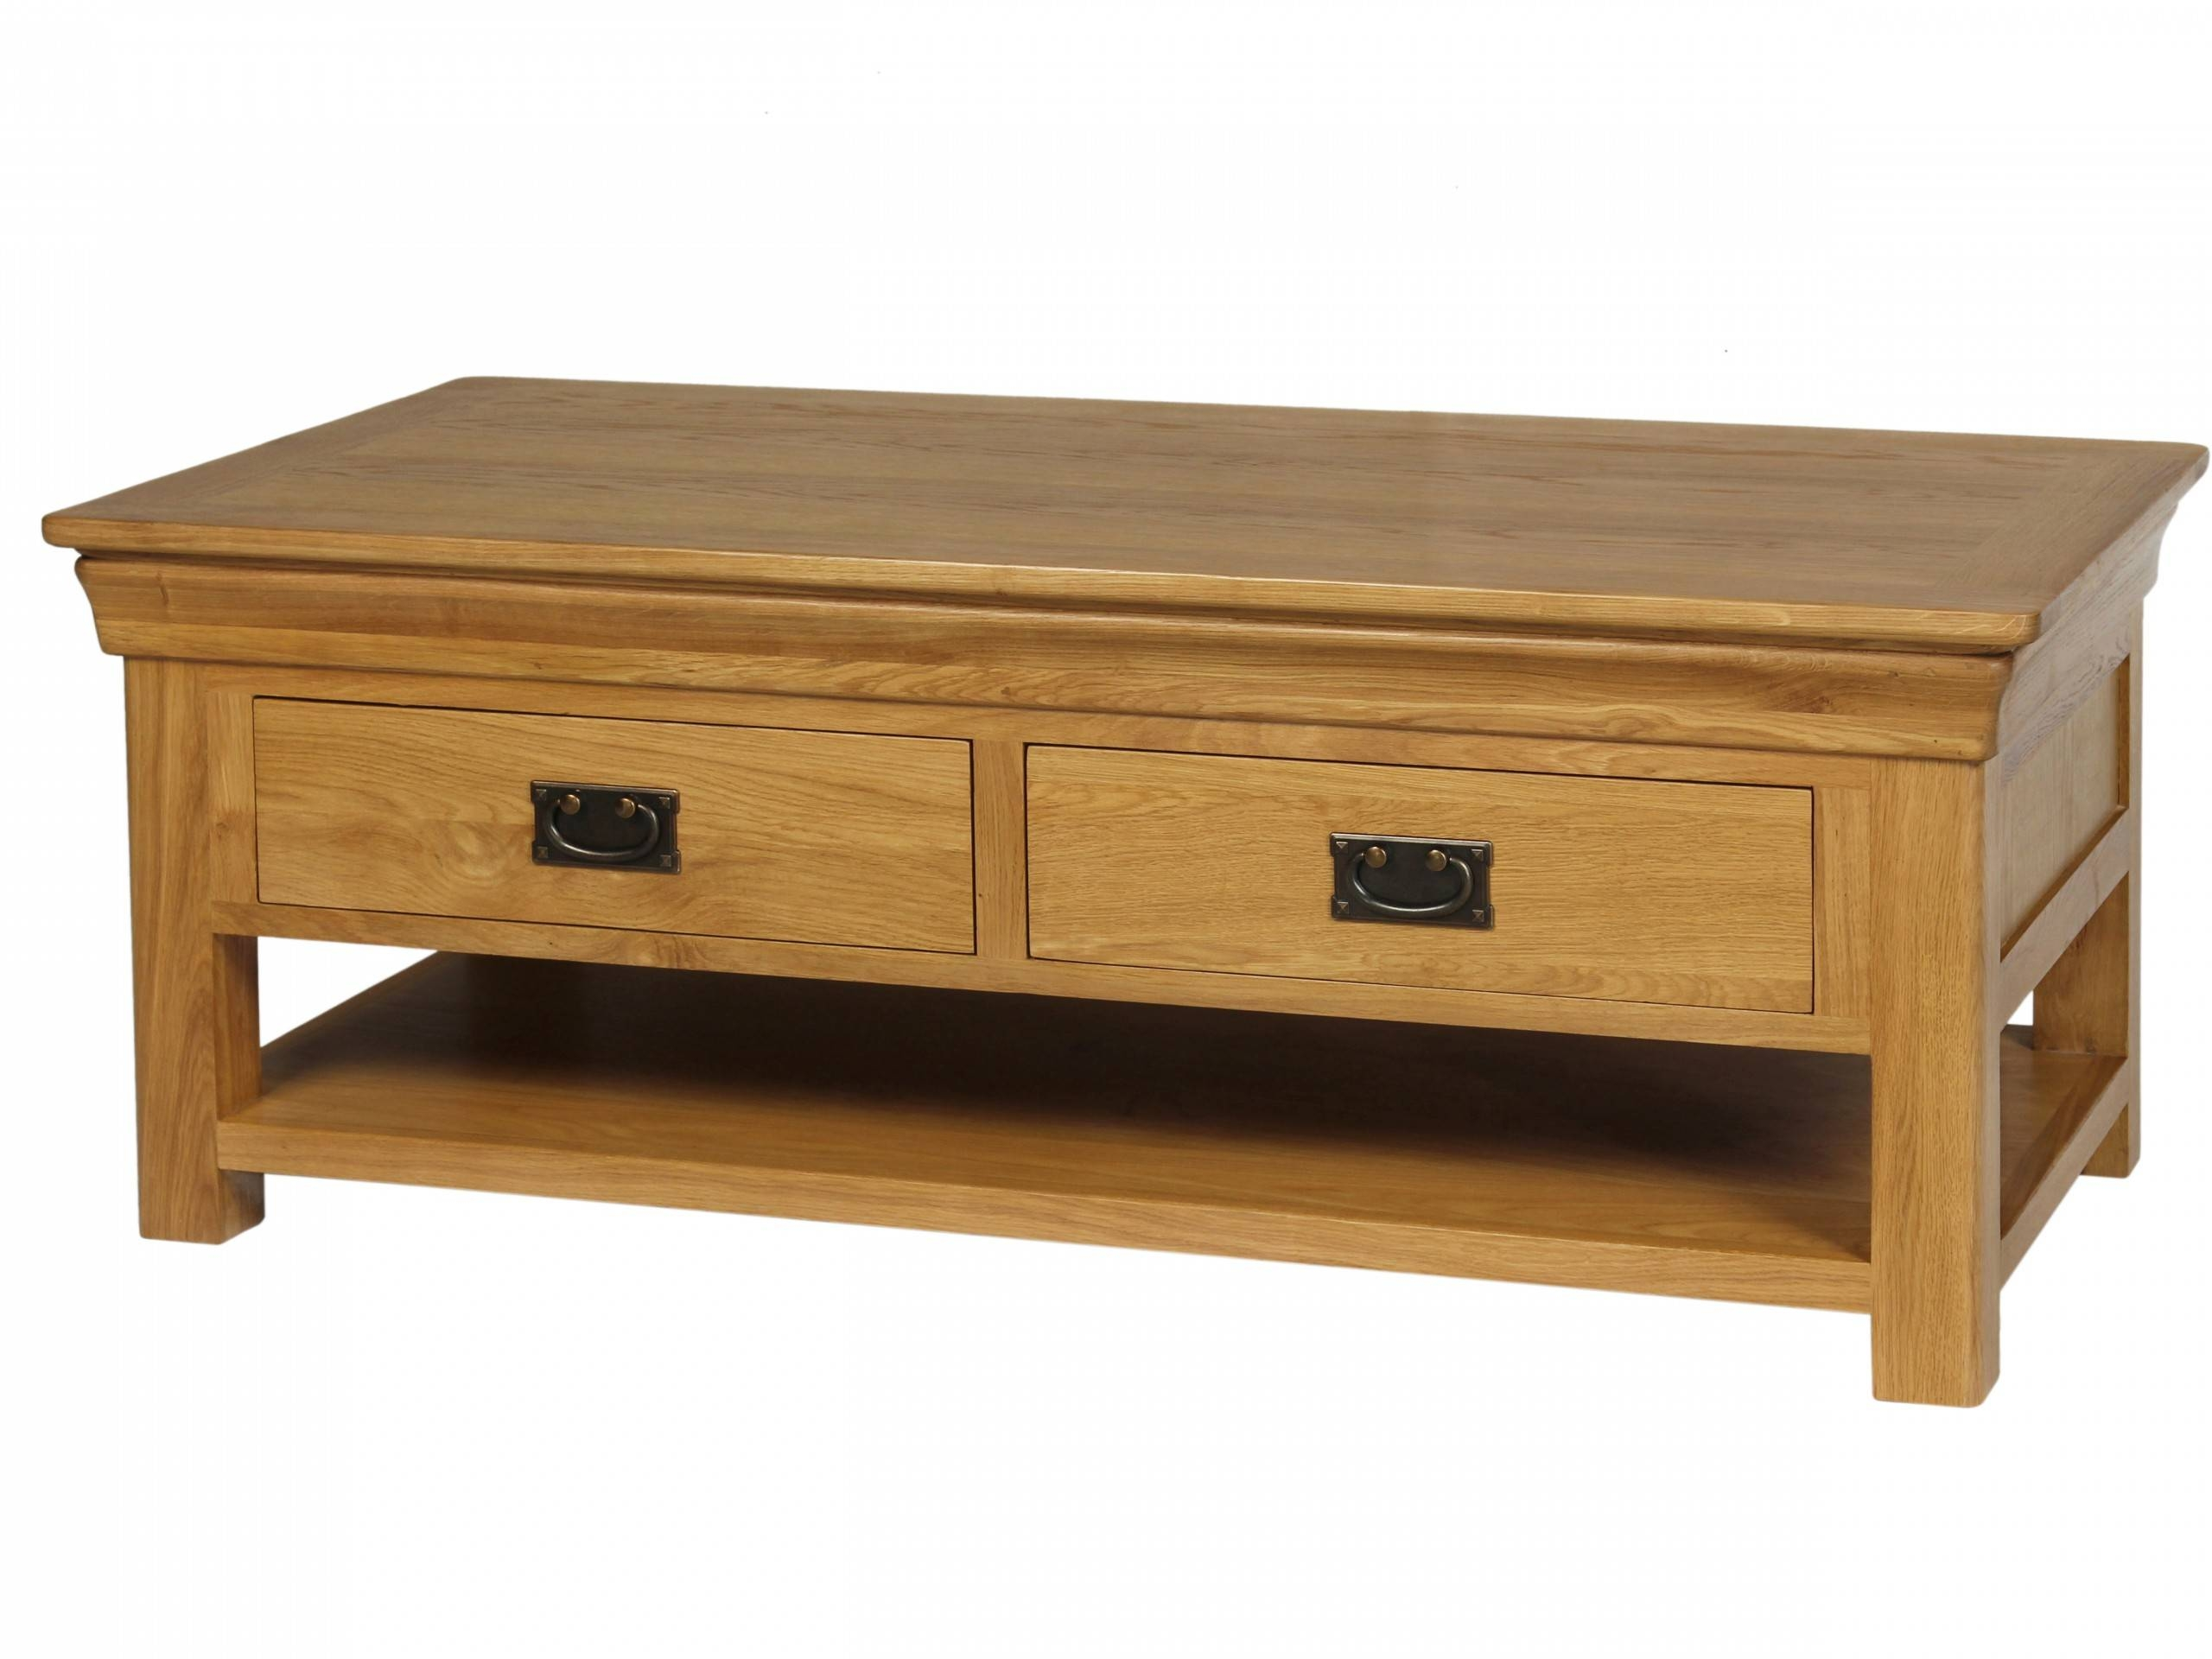 Oak Coffee Table View More Details A Solid Friendly Oak Coffee within Oak Coffee Tables With Shelf (Image 17 of 30)